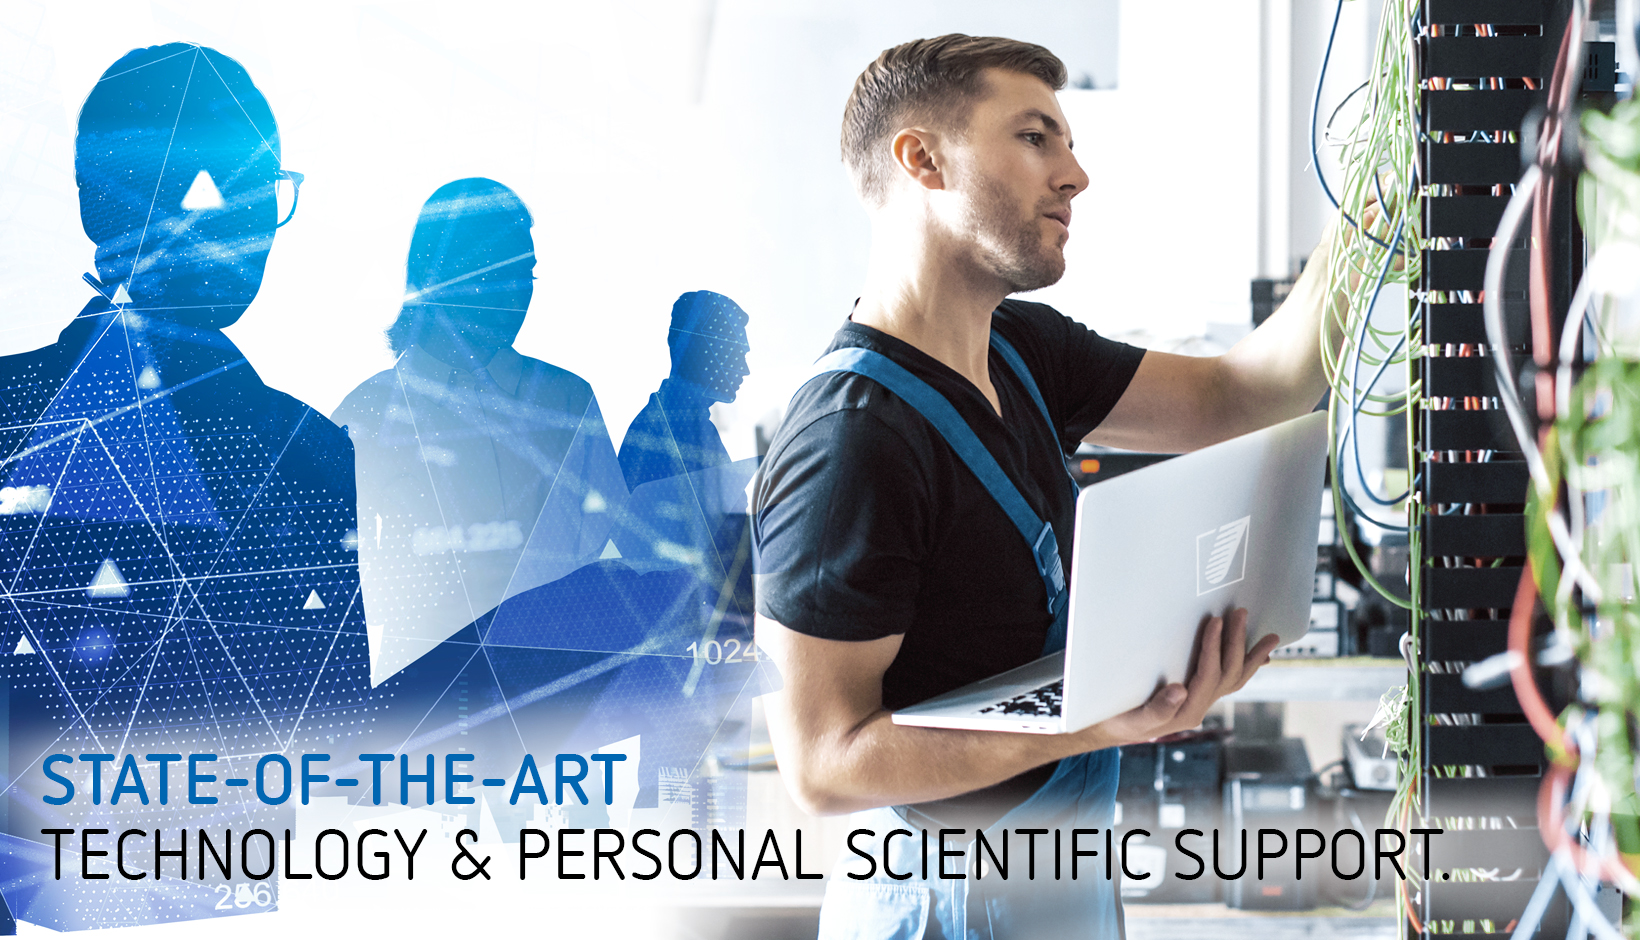 State of the art - technology and personal scientific support